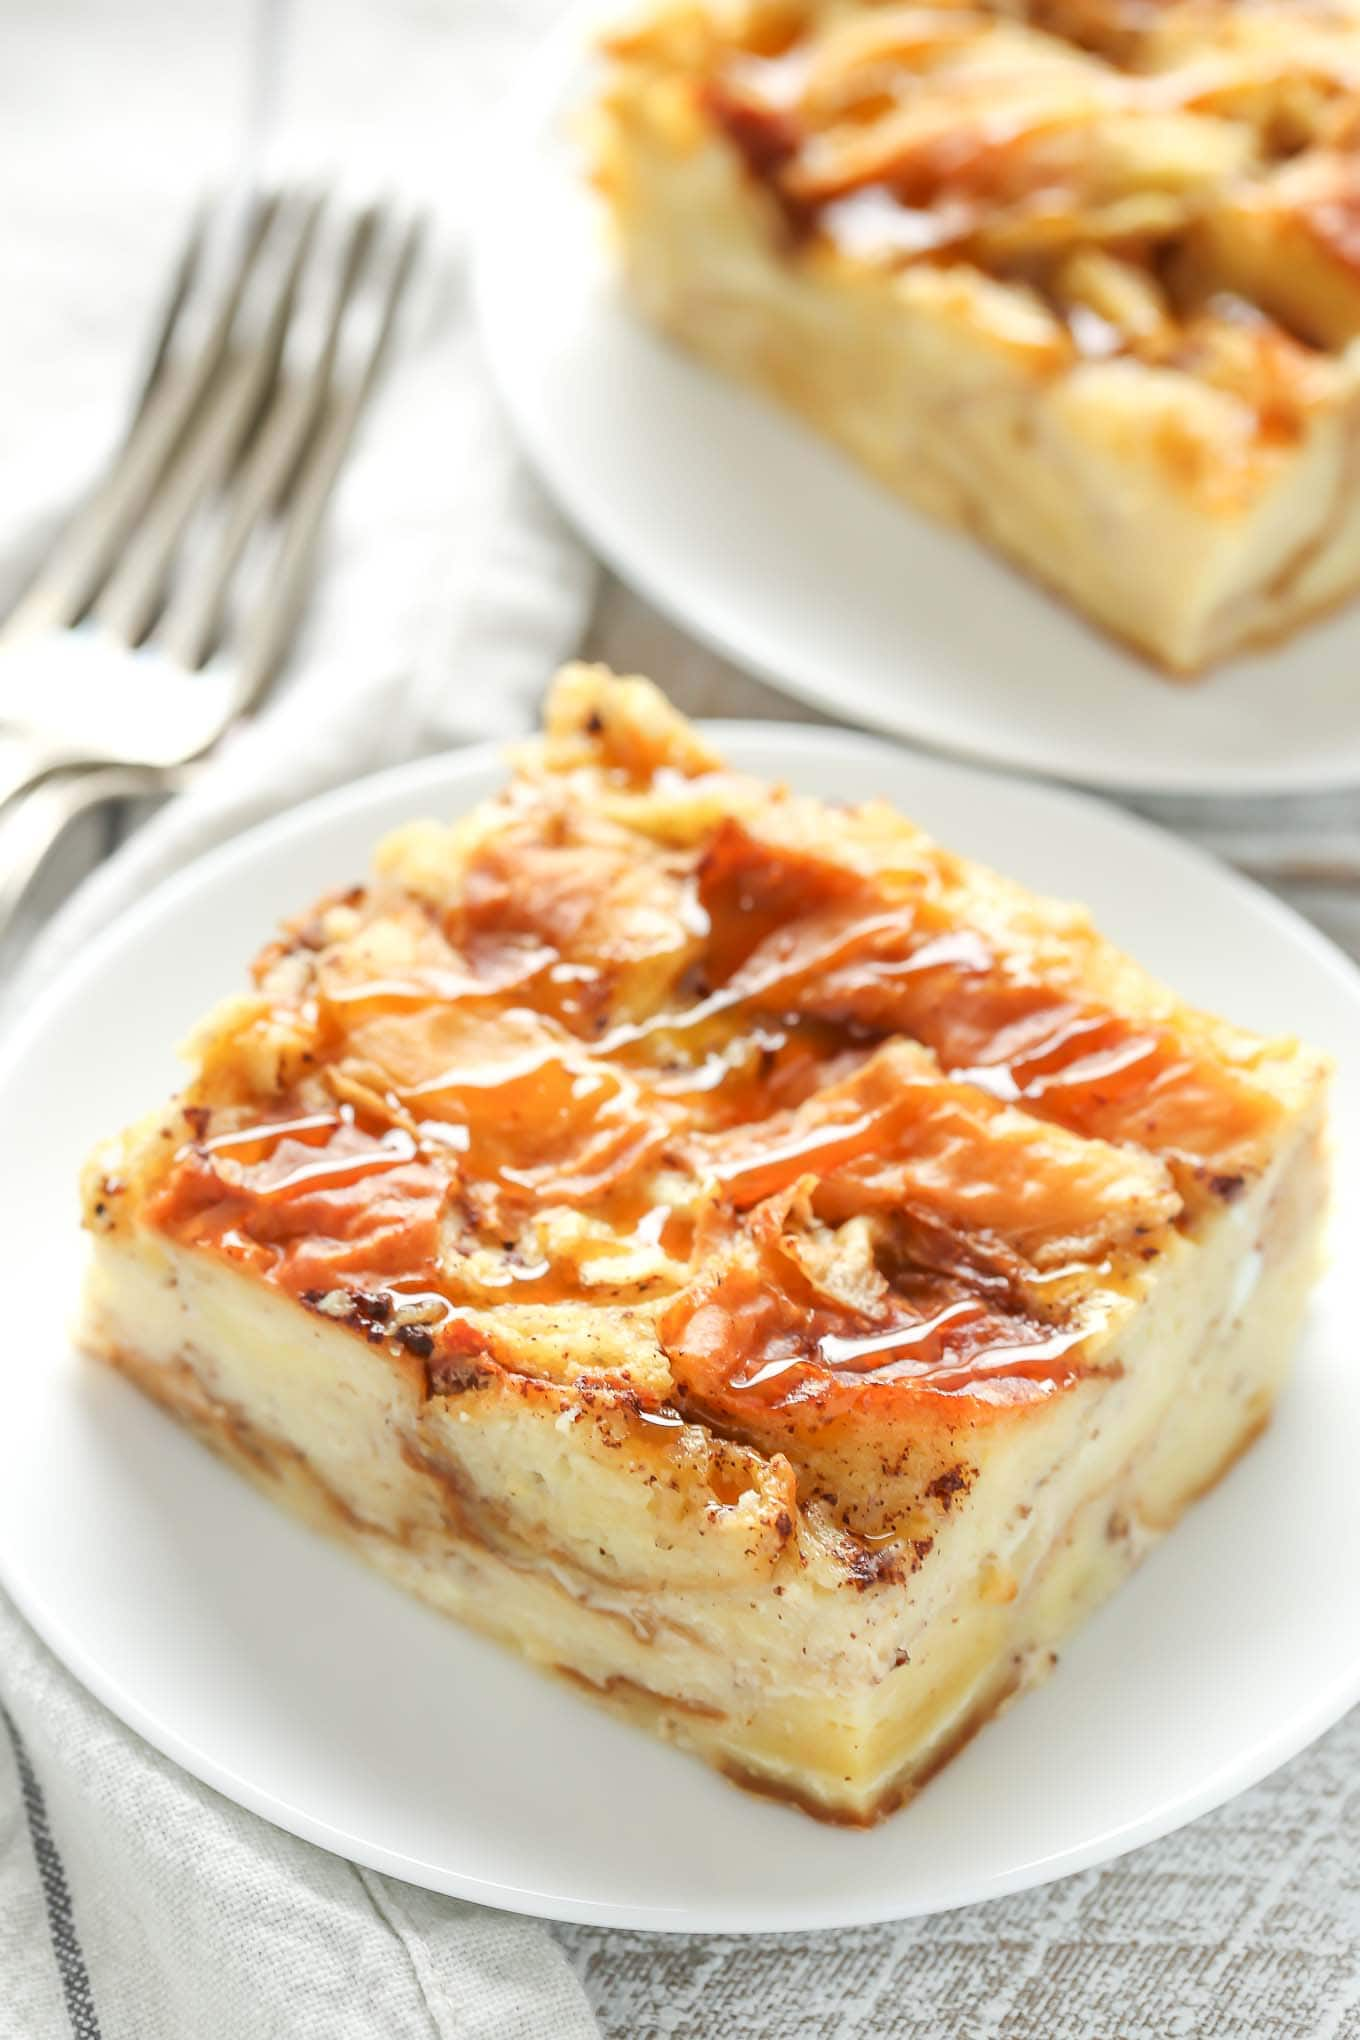 This Bread Pudding Recipe Is Easy To Make With Just A Few Simple Ingredients